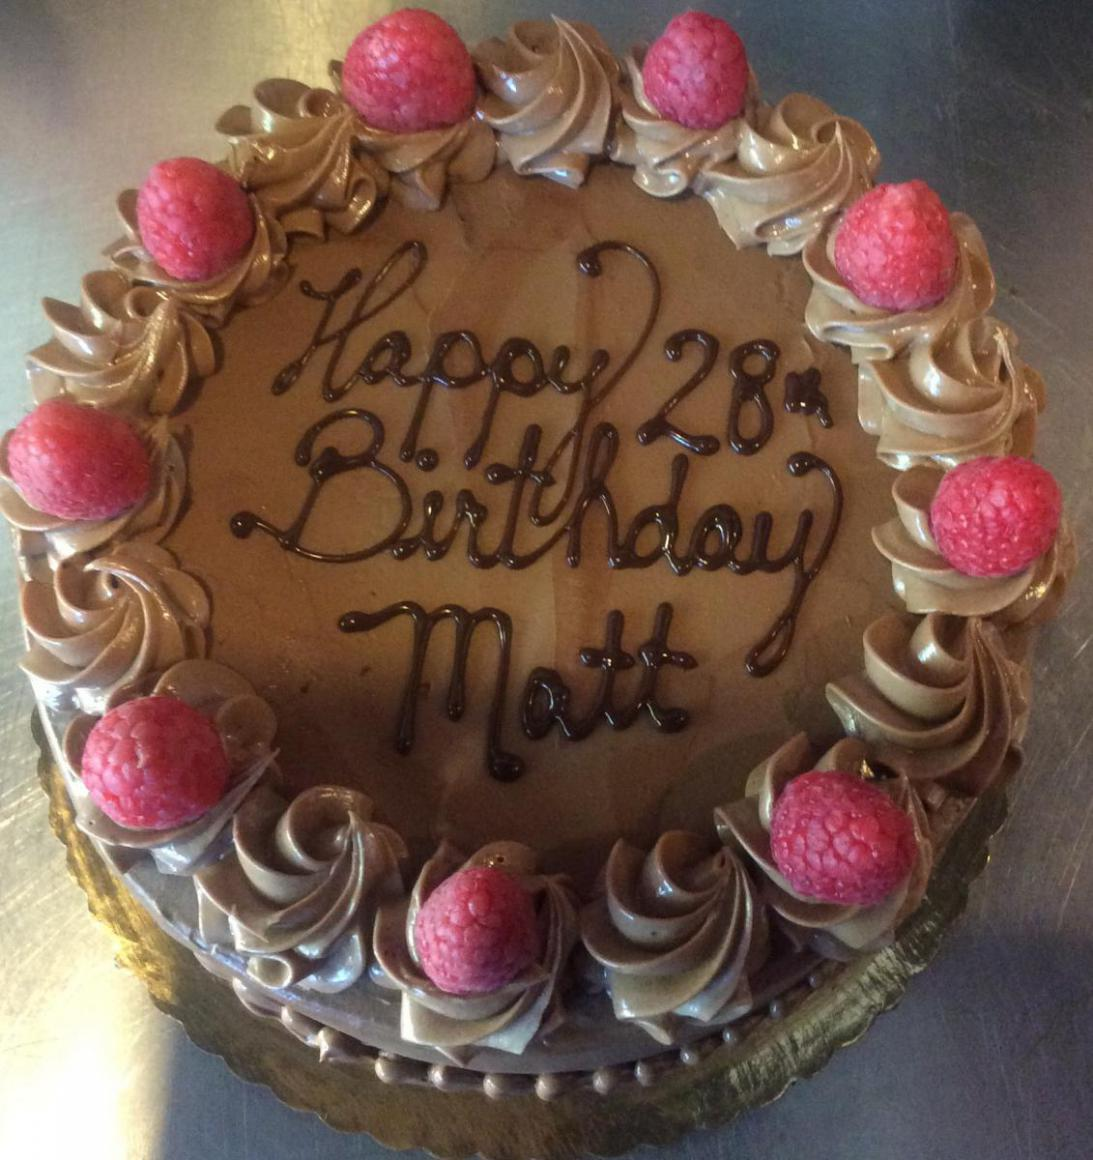 We Offer Our Birthday Cakes In A Variety Of Sizes To Best Suit Your Needs Are Round And Typically Come 6 8 Or 10 All